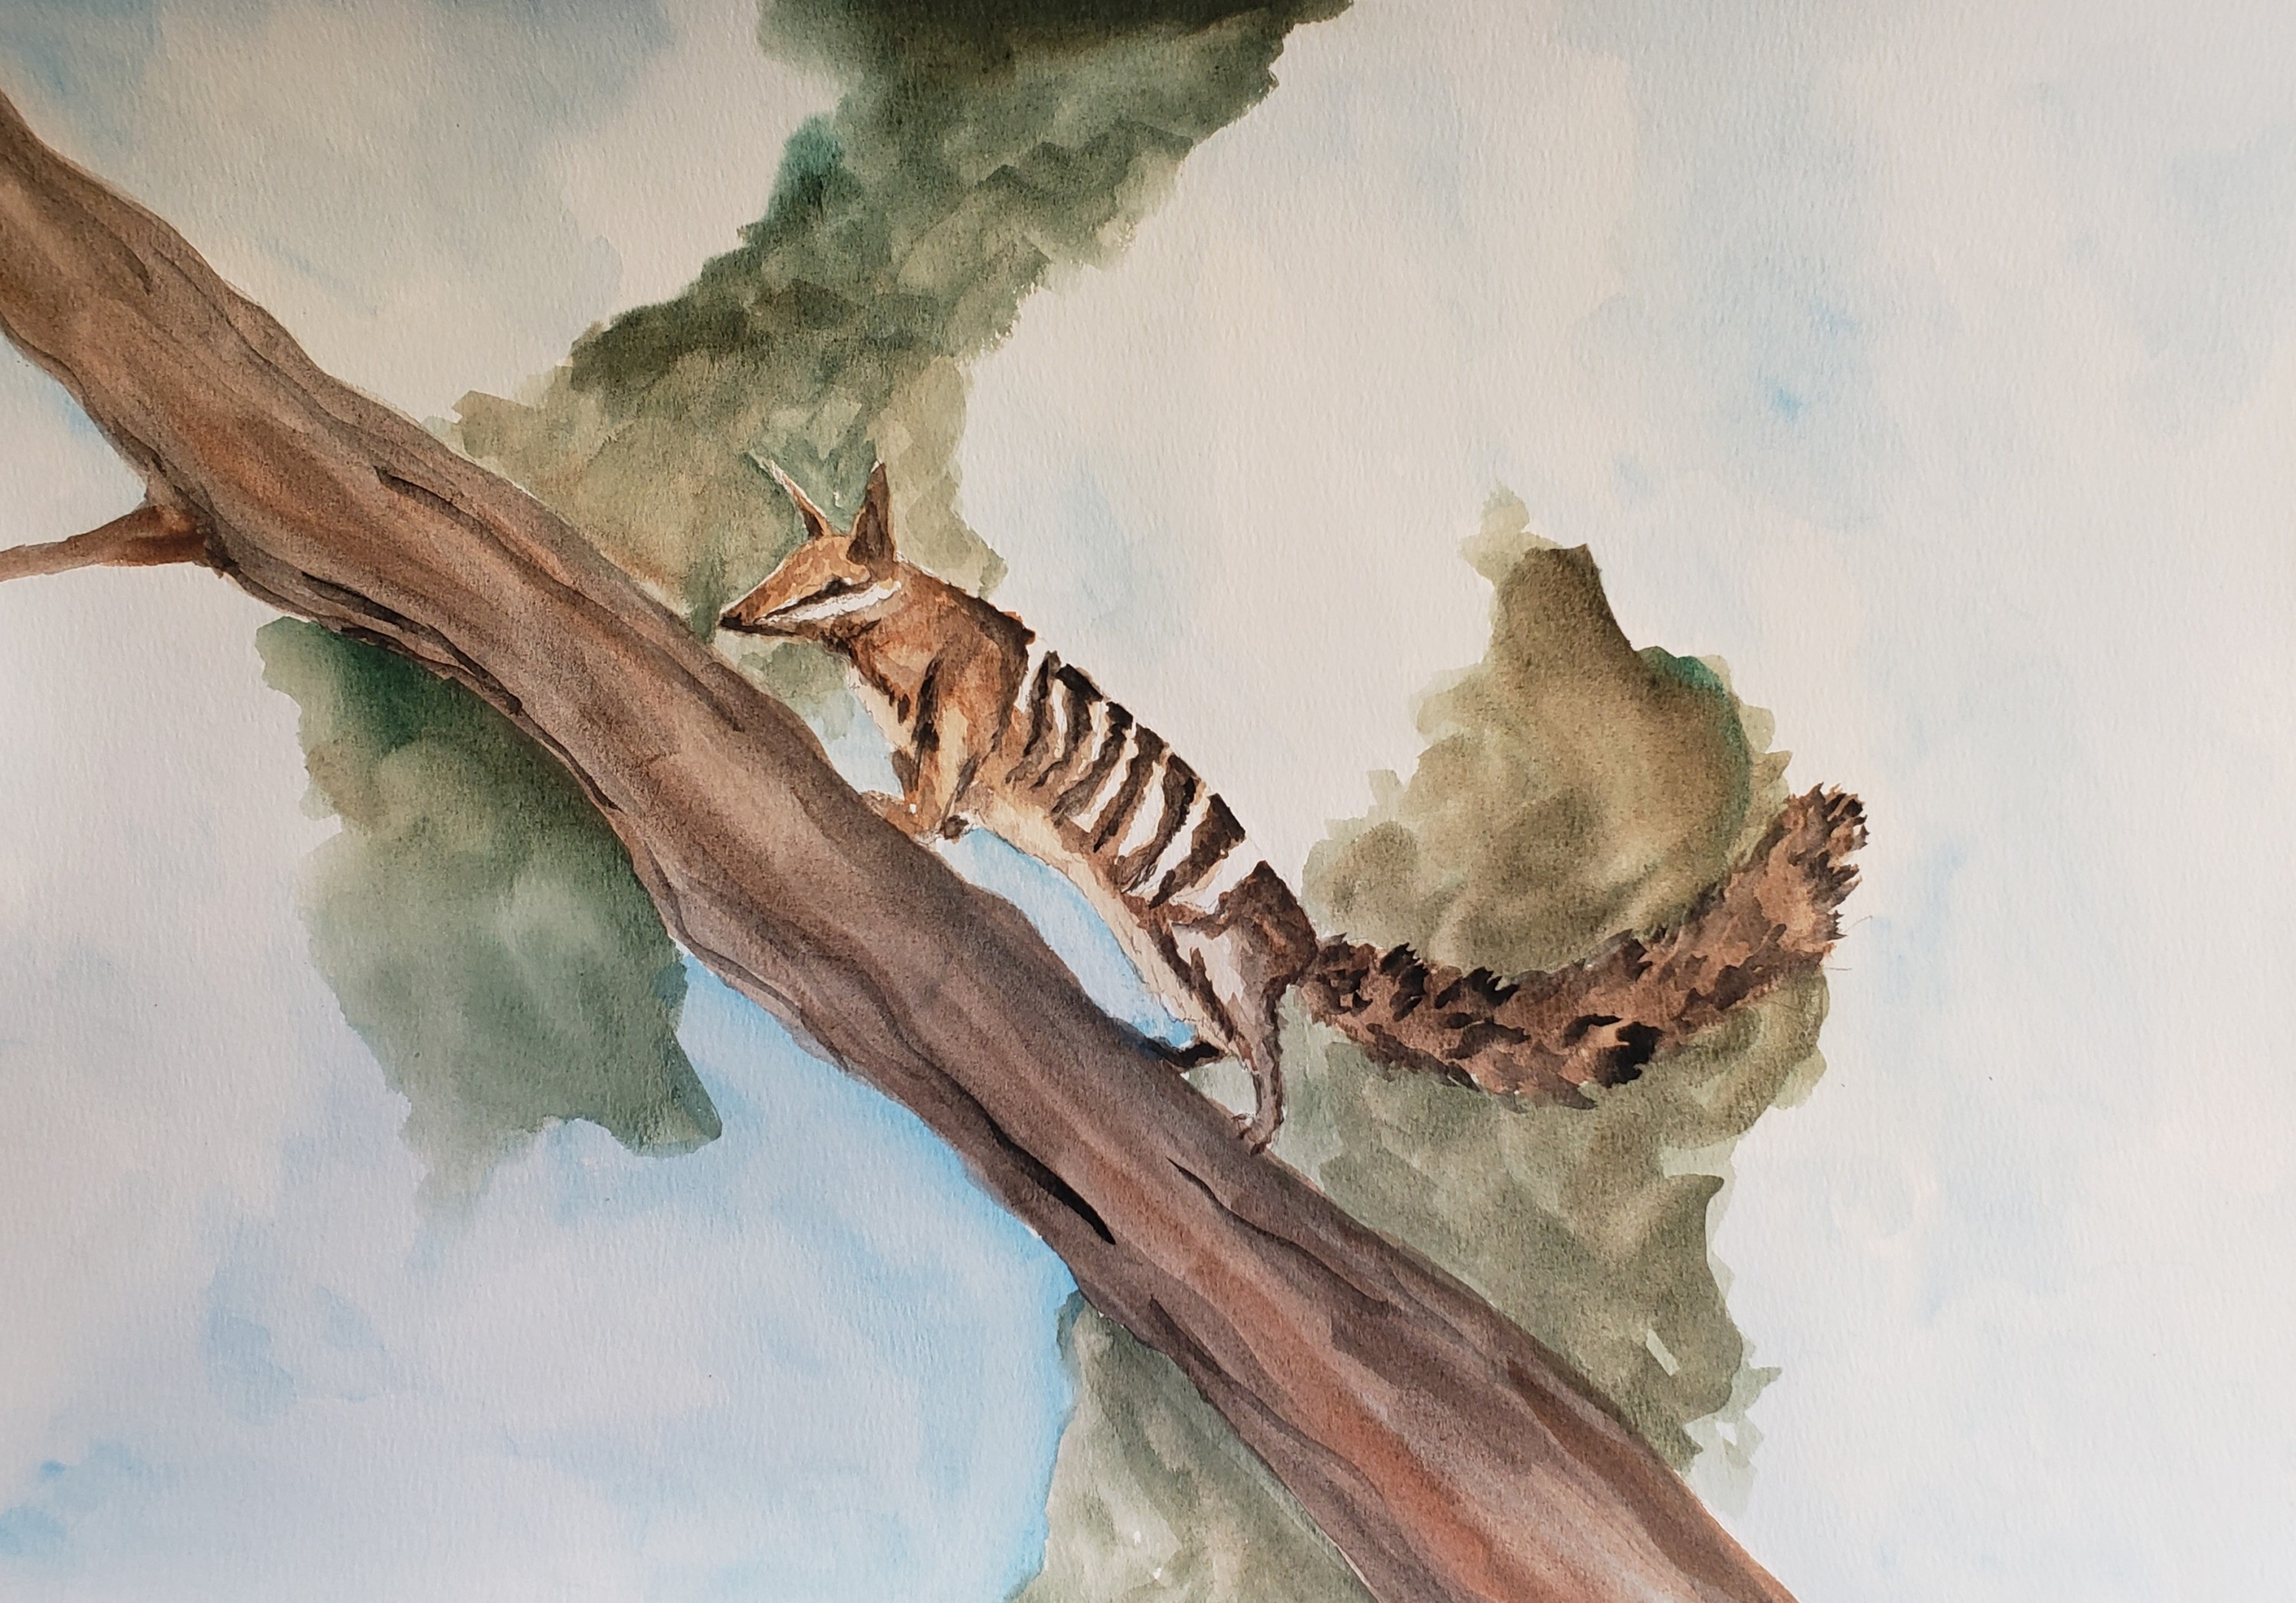 A numbat, an animal in Australia, climbing up a tree surrounded in blue sky, white clouds, and green shrub around it.